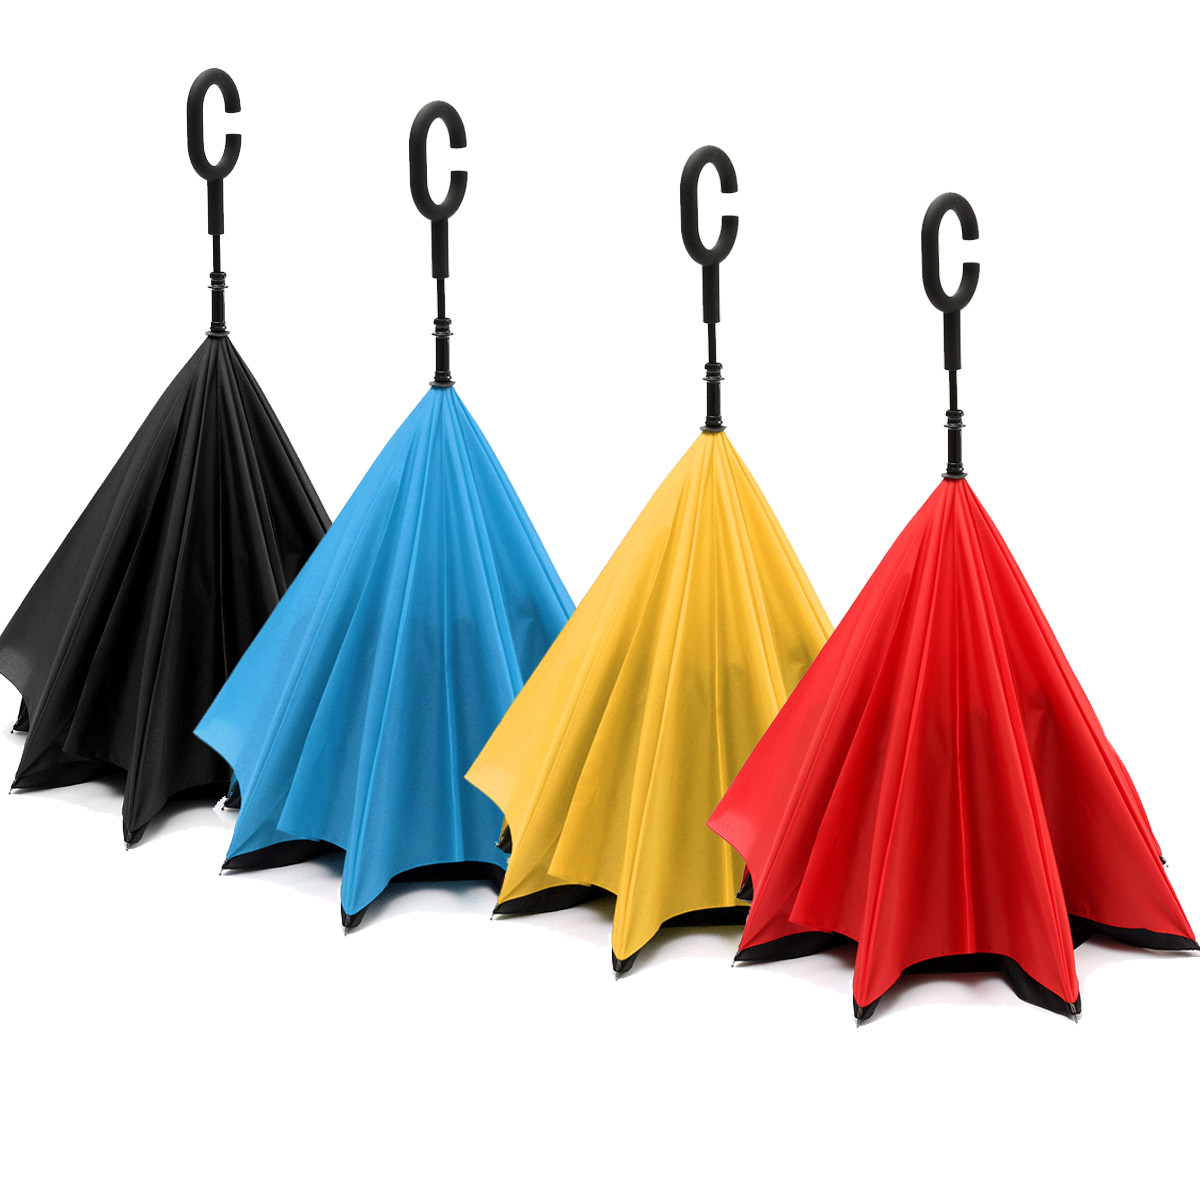 Online color invert picture - Double Layer Reverse Umbrella Big Double Layer Inside Inverted Upside Down Windproof Umbrella Self Standing